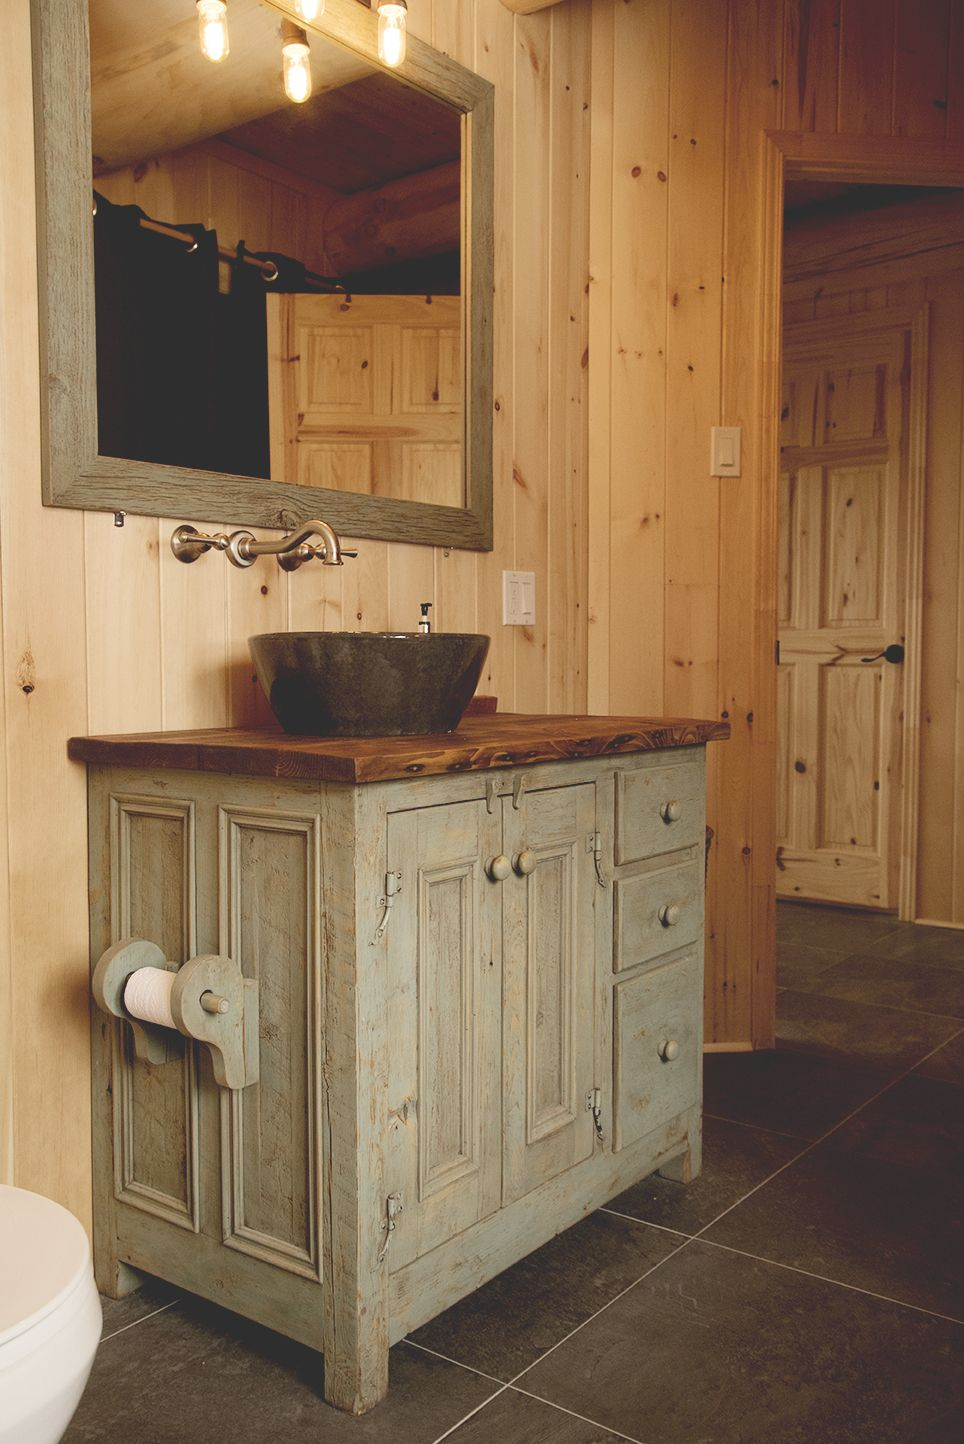 meubles lavabo en bois de grange julie houde audet photographe. Black Bedroom Furniture Sets. Home Design Ideas